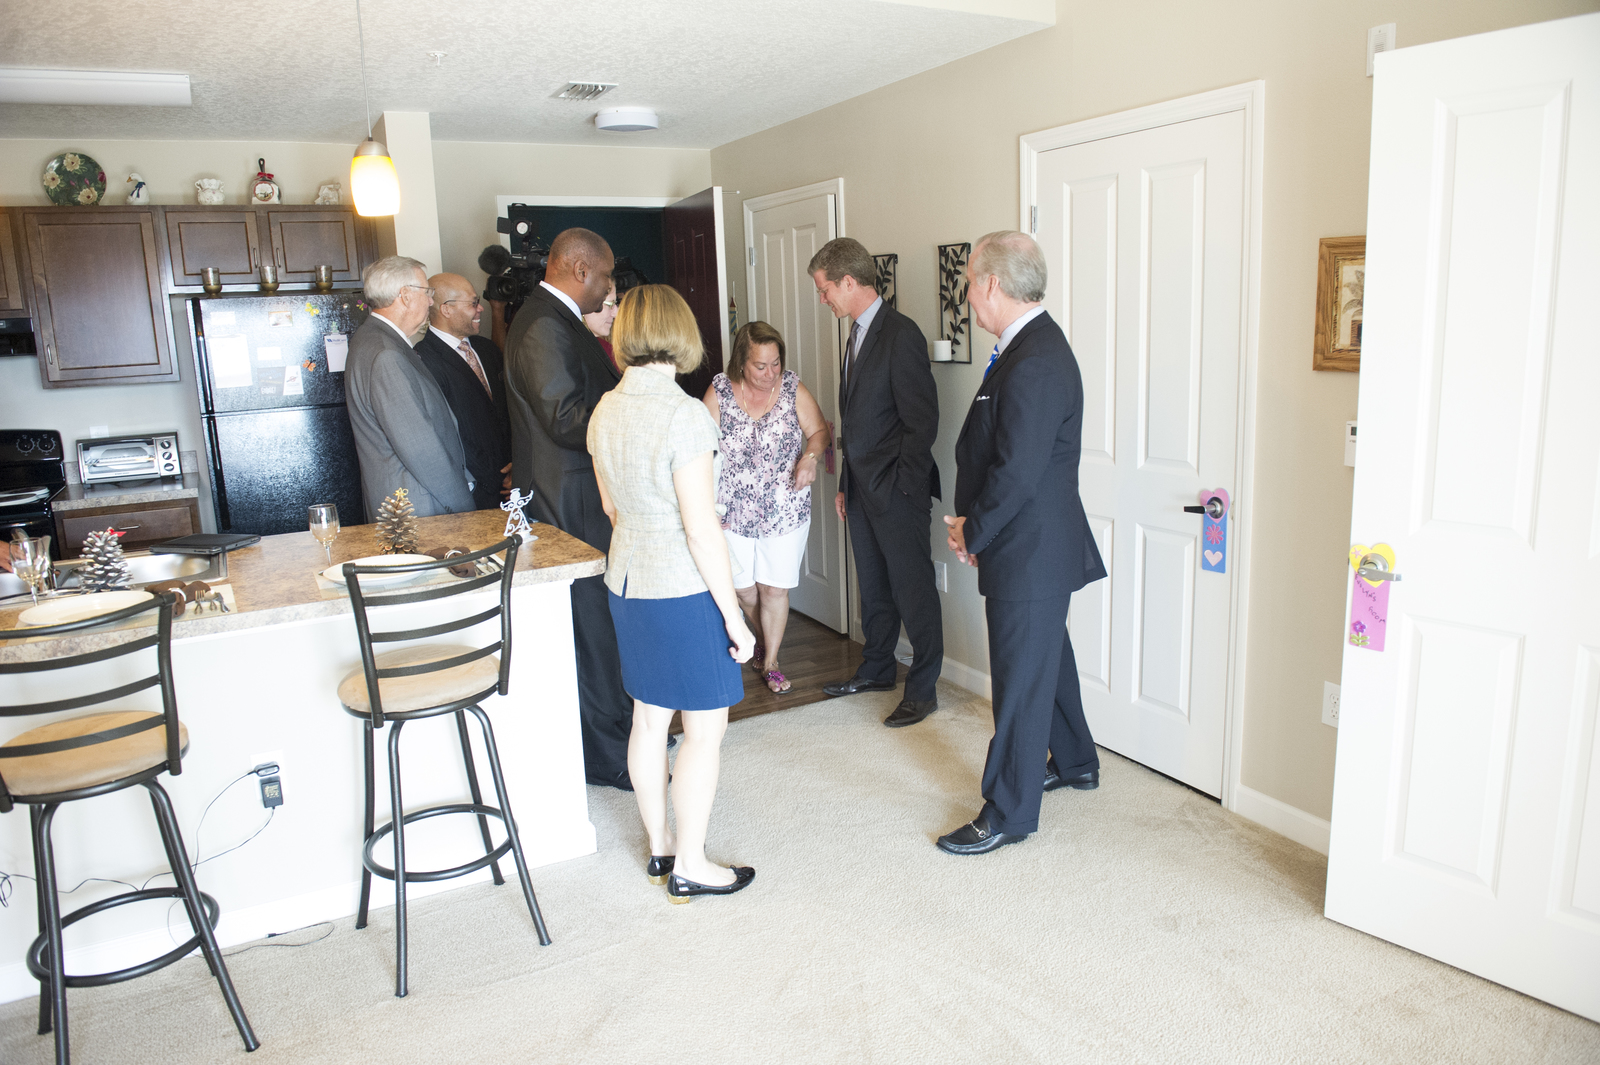 Visit of Secretary Shaun Donovan to Tampa, Florida, where he toured the Ella [Senior Residences, the first completed apartment building within the Encore Housing Development (funded through a $30 million Choice Neighborhoods Grant from HUD in 2012), and promoted the Affordable Care Act.  Secretary Donovan was joined on the tour and the health care promotion by Florida Congresswoman Kathy Castor,  Tampa Mayor Bob Buckhorn, and leaders of the Tampa Housing Authority, among others.]